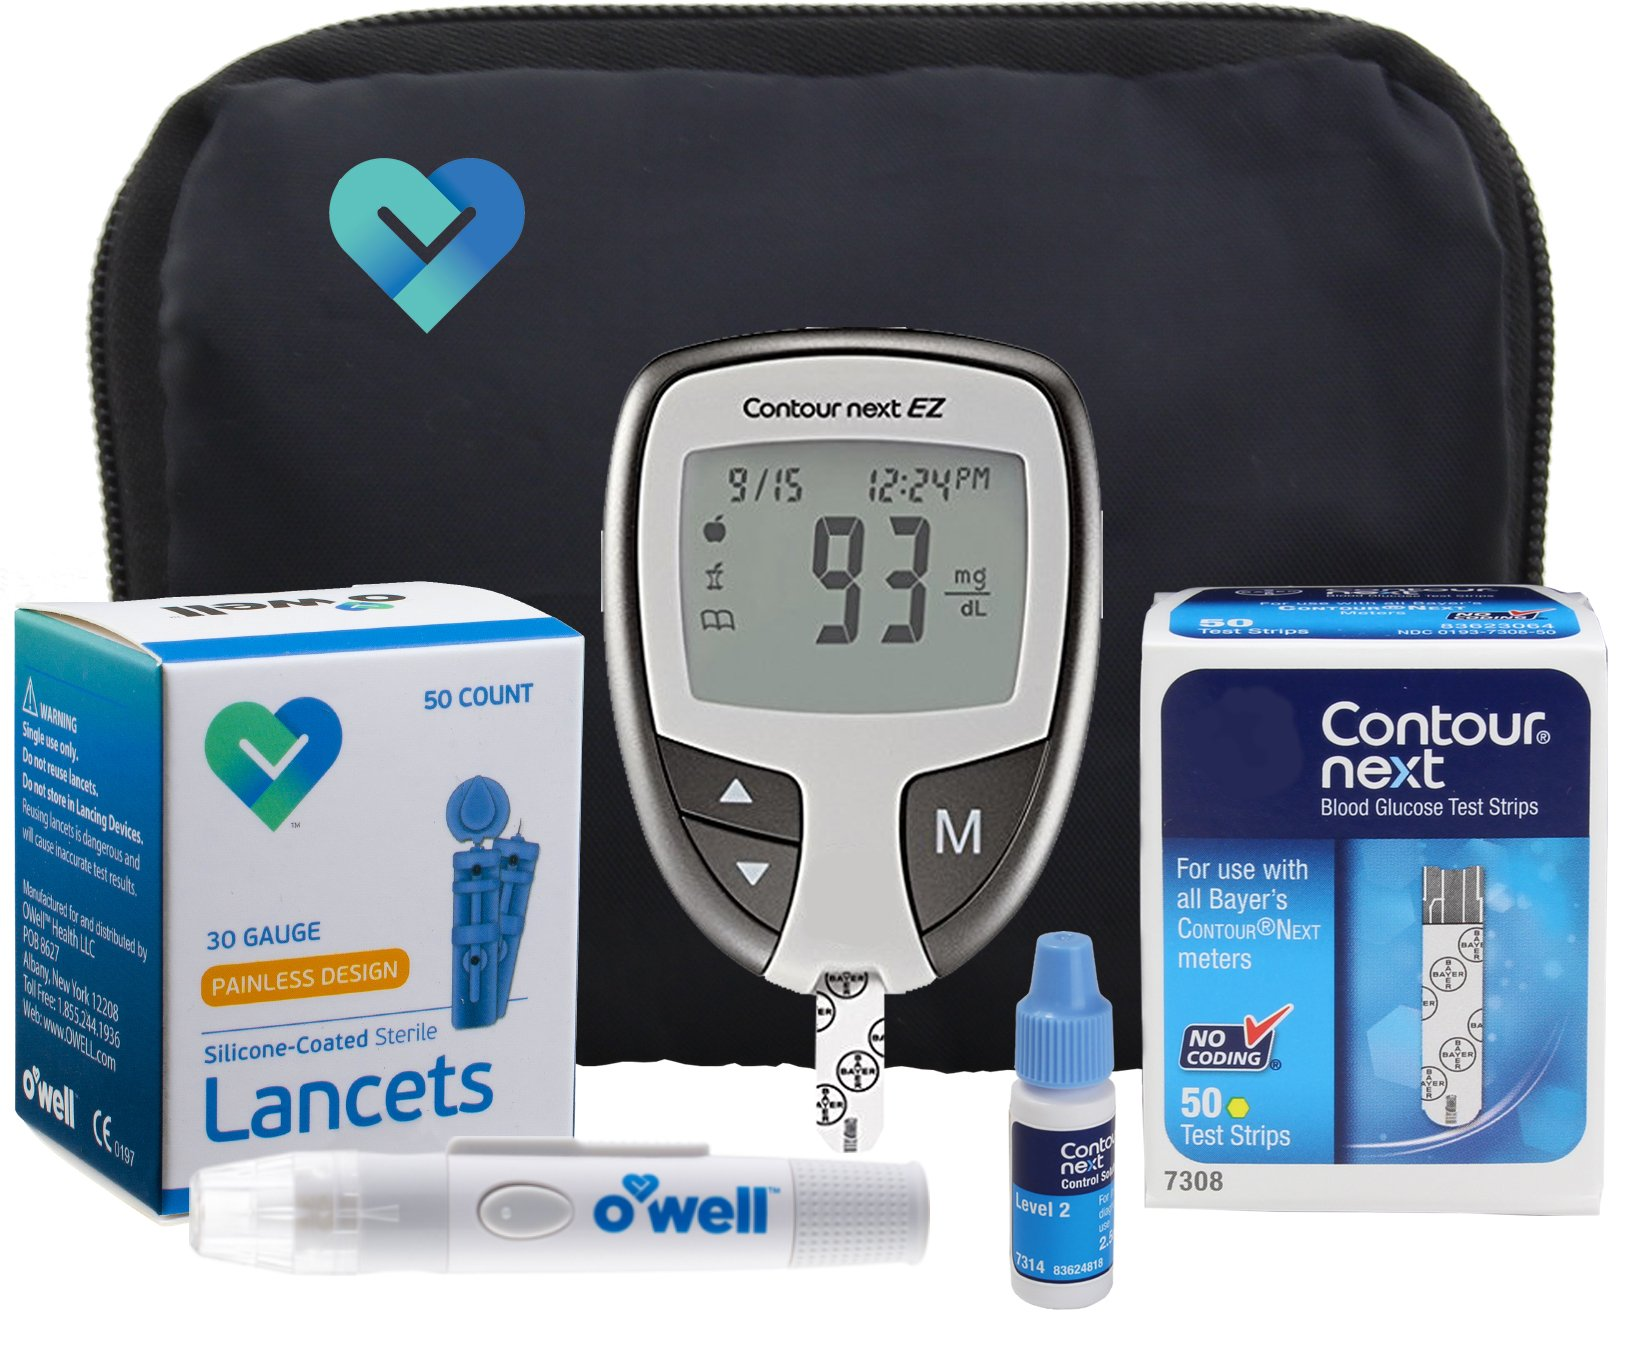 Contour NEXT Blood Glucose Testing Kit, 50 Count | Contour NEXT EZ Meter, 50 Contour NEXT Blood Glucose Test Strips, 50 Lancets, Lancing Device, Control Solution, Manual's, Log Book & Carry Case